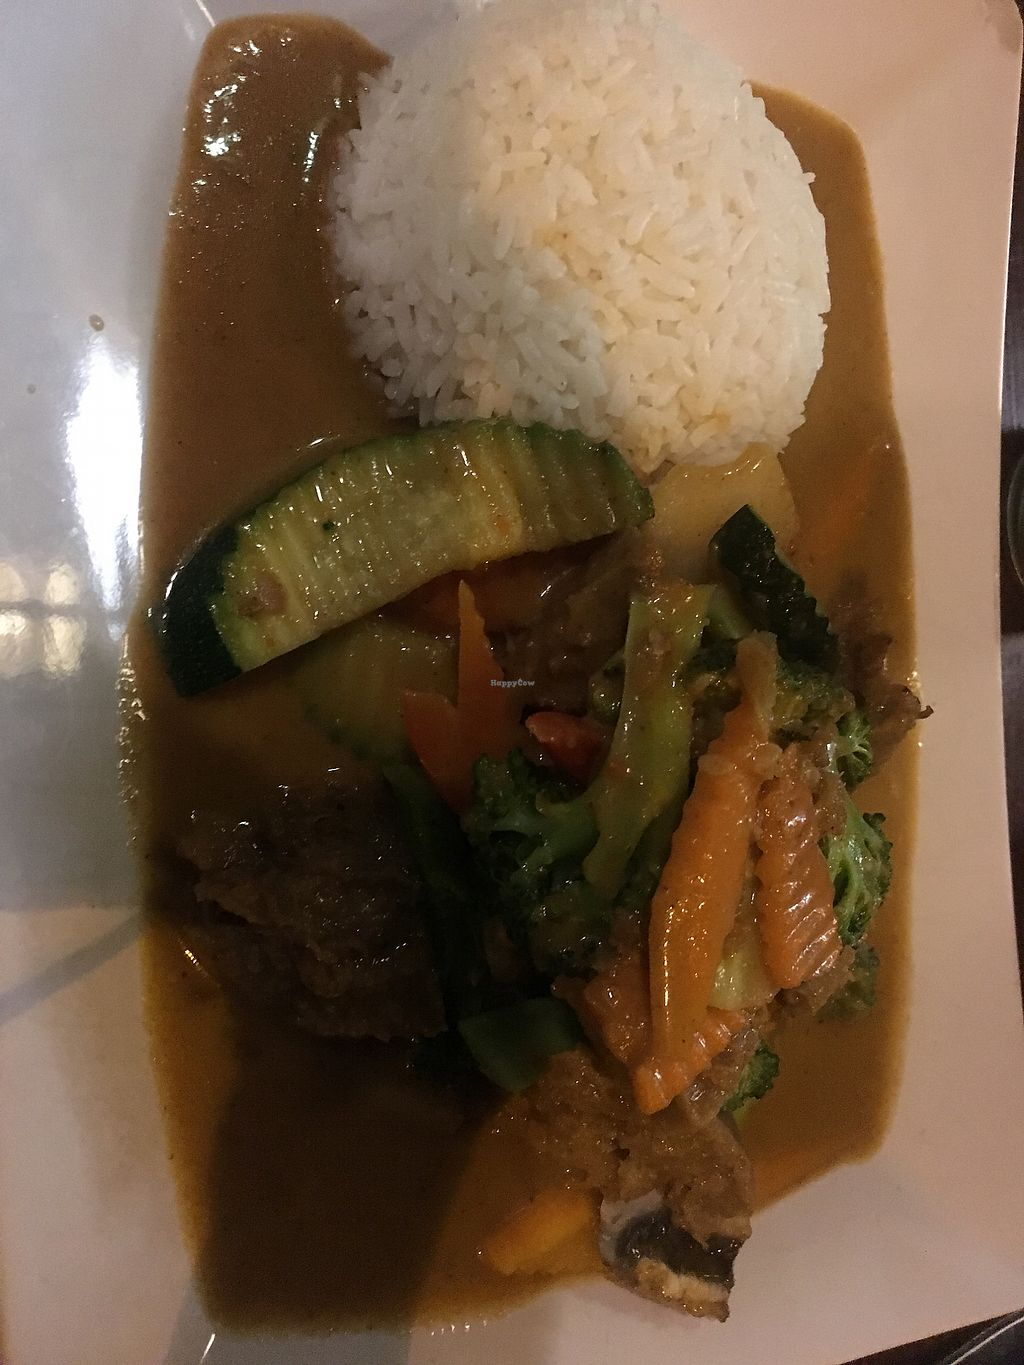 "Photo of Soup and Roll  by <a href=""/members/profile/KimMartin"">KimMartin</a> <br/>Mock chicken with peanut satay sauce <br/> August 28, 2017  - <a href='/contact/abuse/image/42037/298417'>Report</a>"